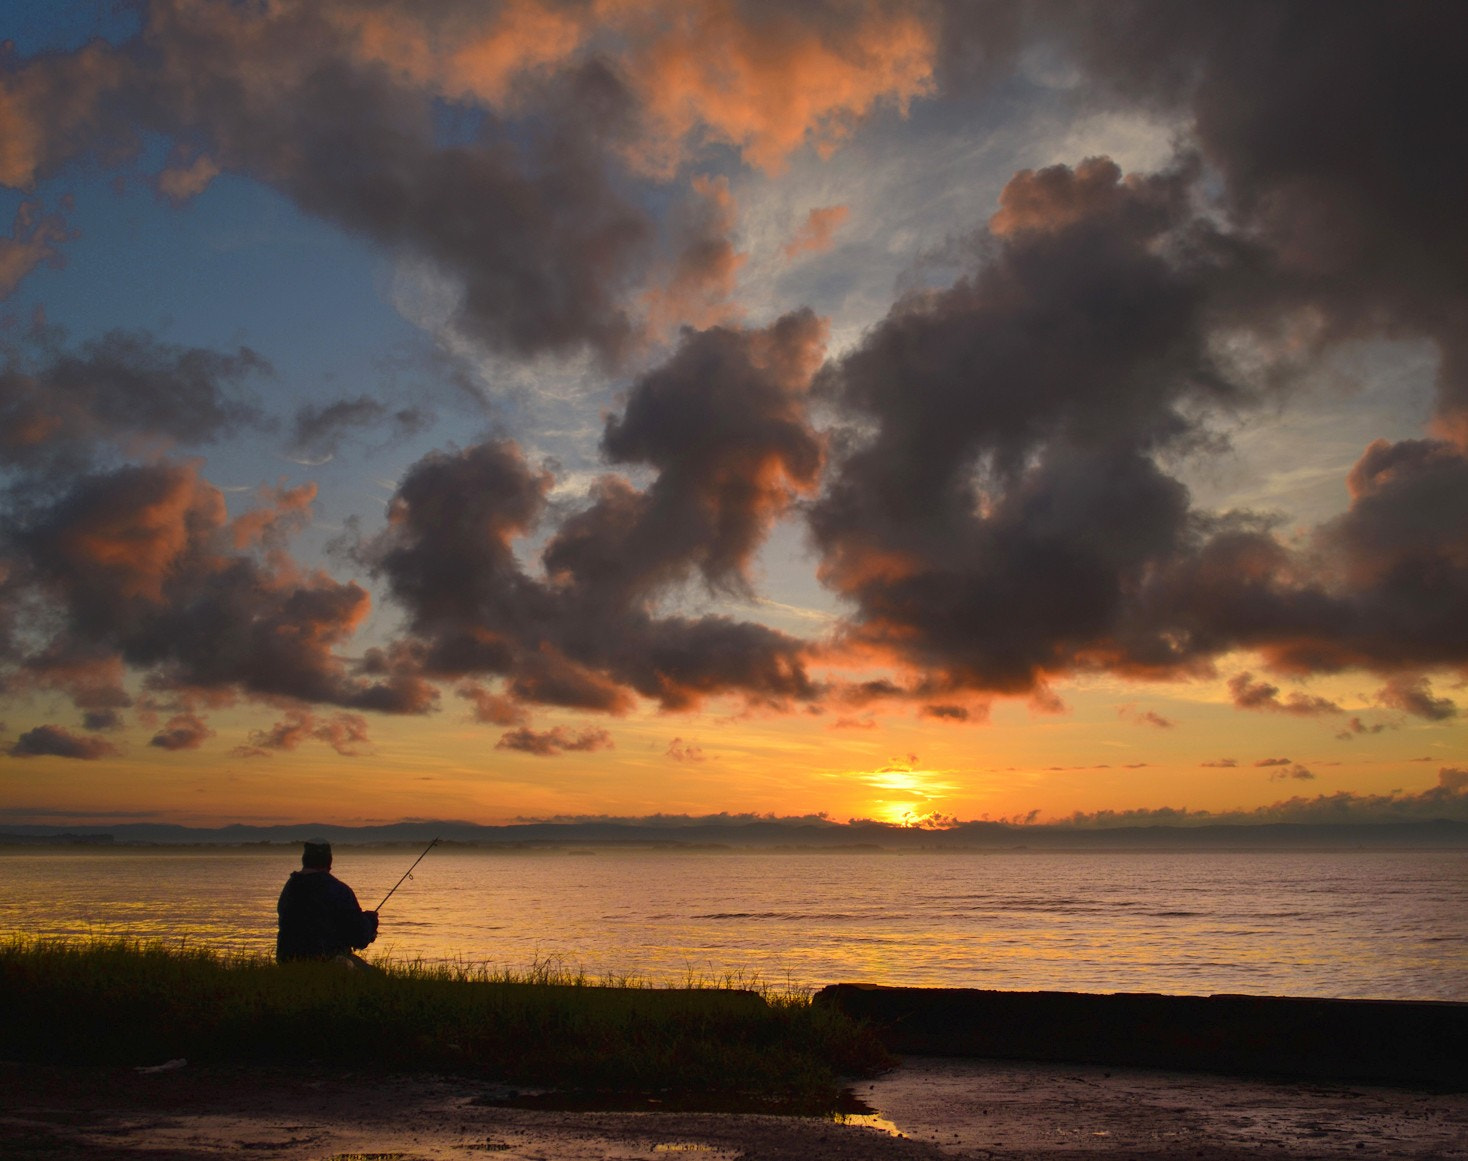 Photograph Another fishing day by Vey Telmo on 500px